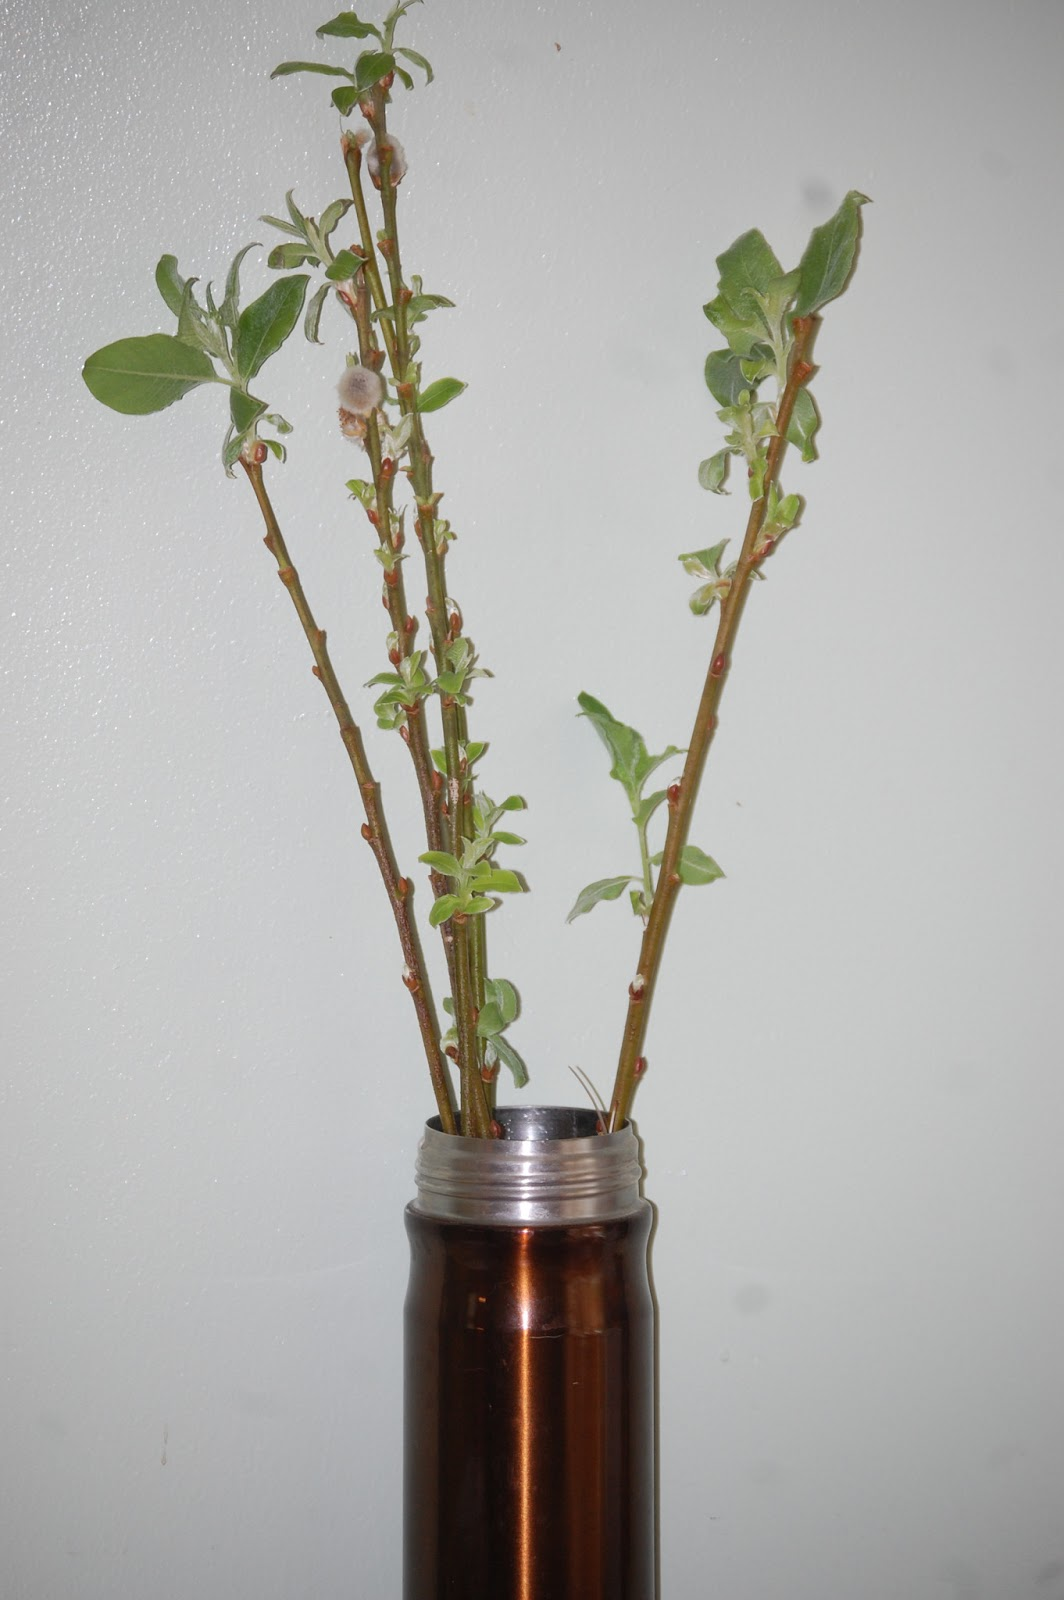 Propagating Pussy Willow